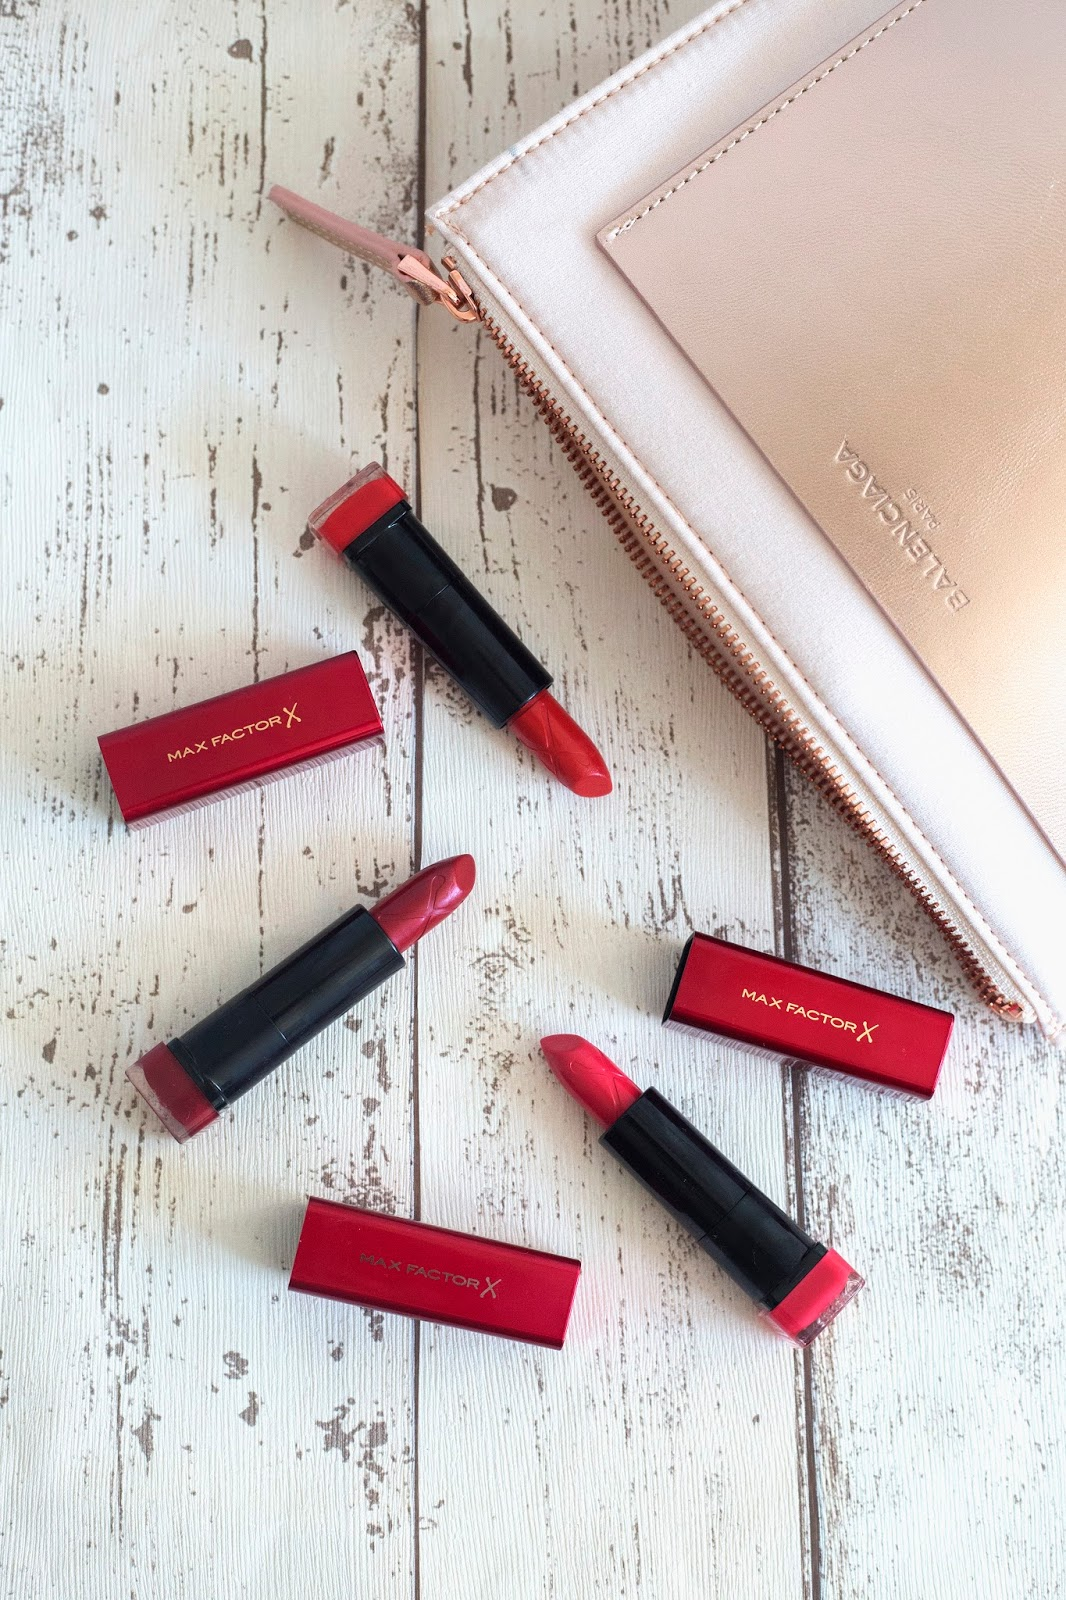 max-factor-marilyn-monroe-lipstick-review